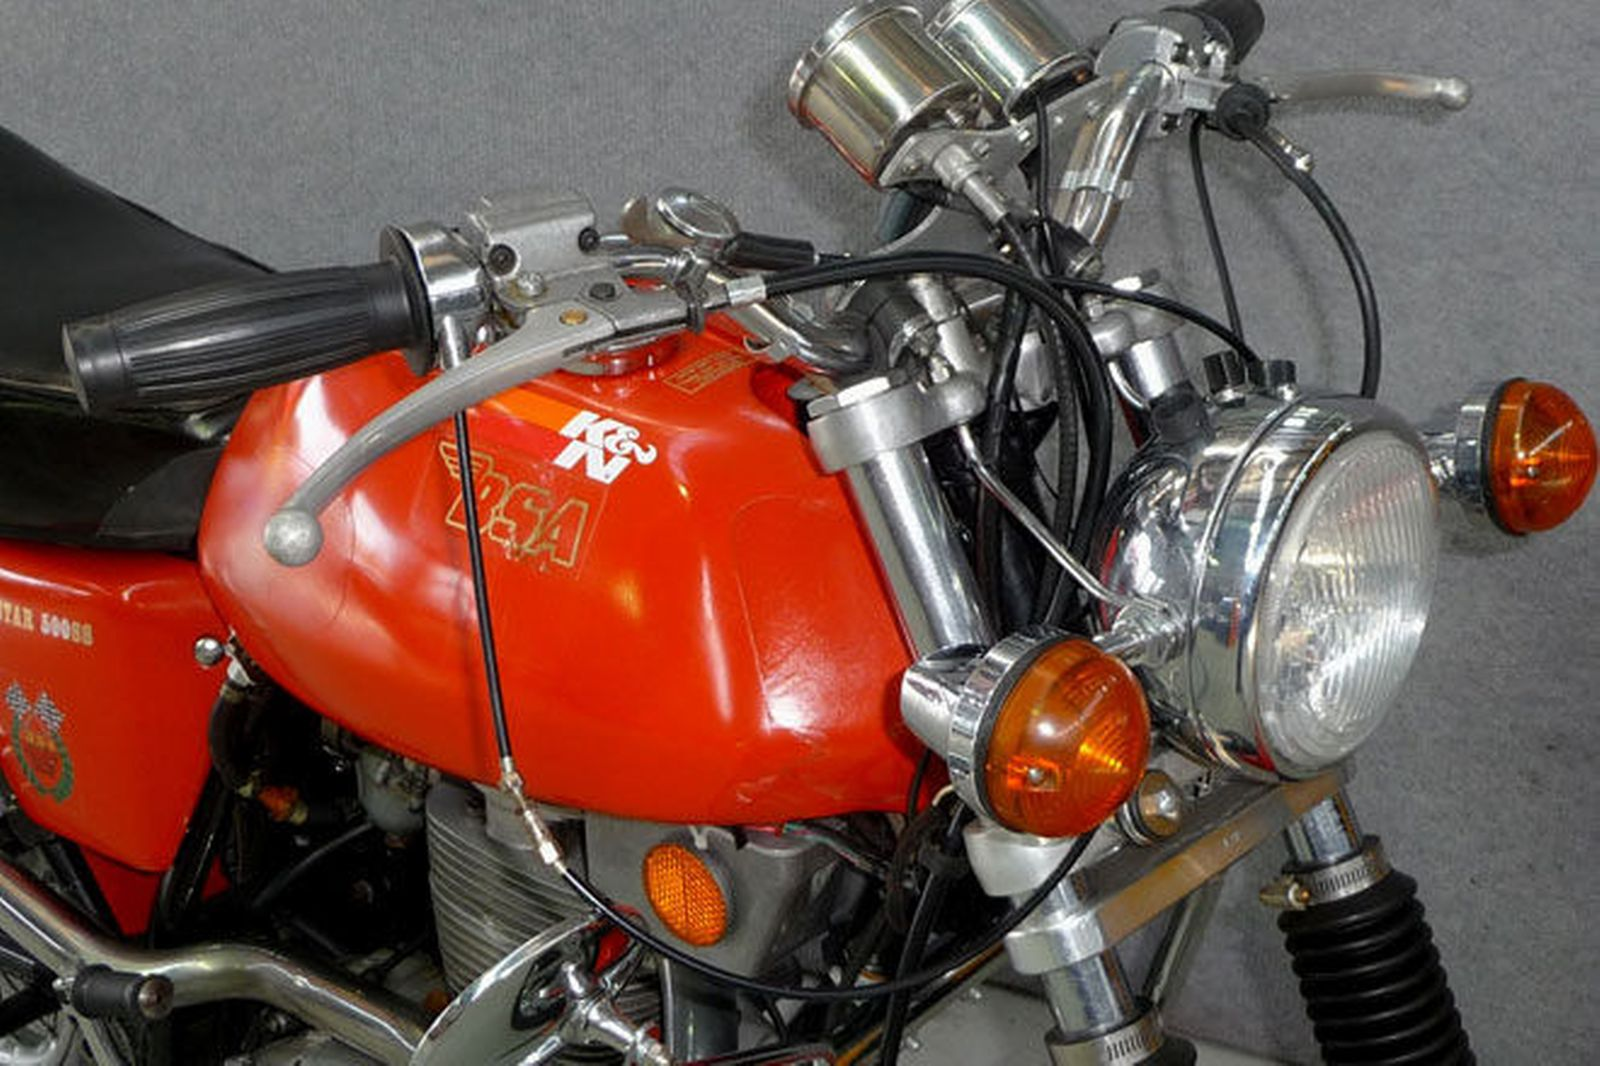 BSA 500 SS Gold Star 1971 images #93870